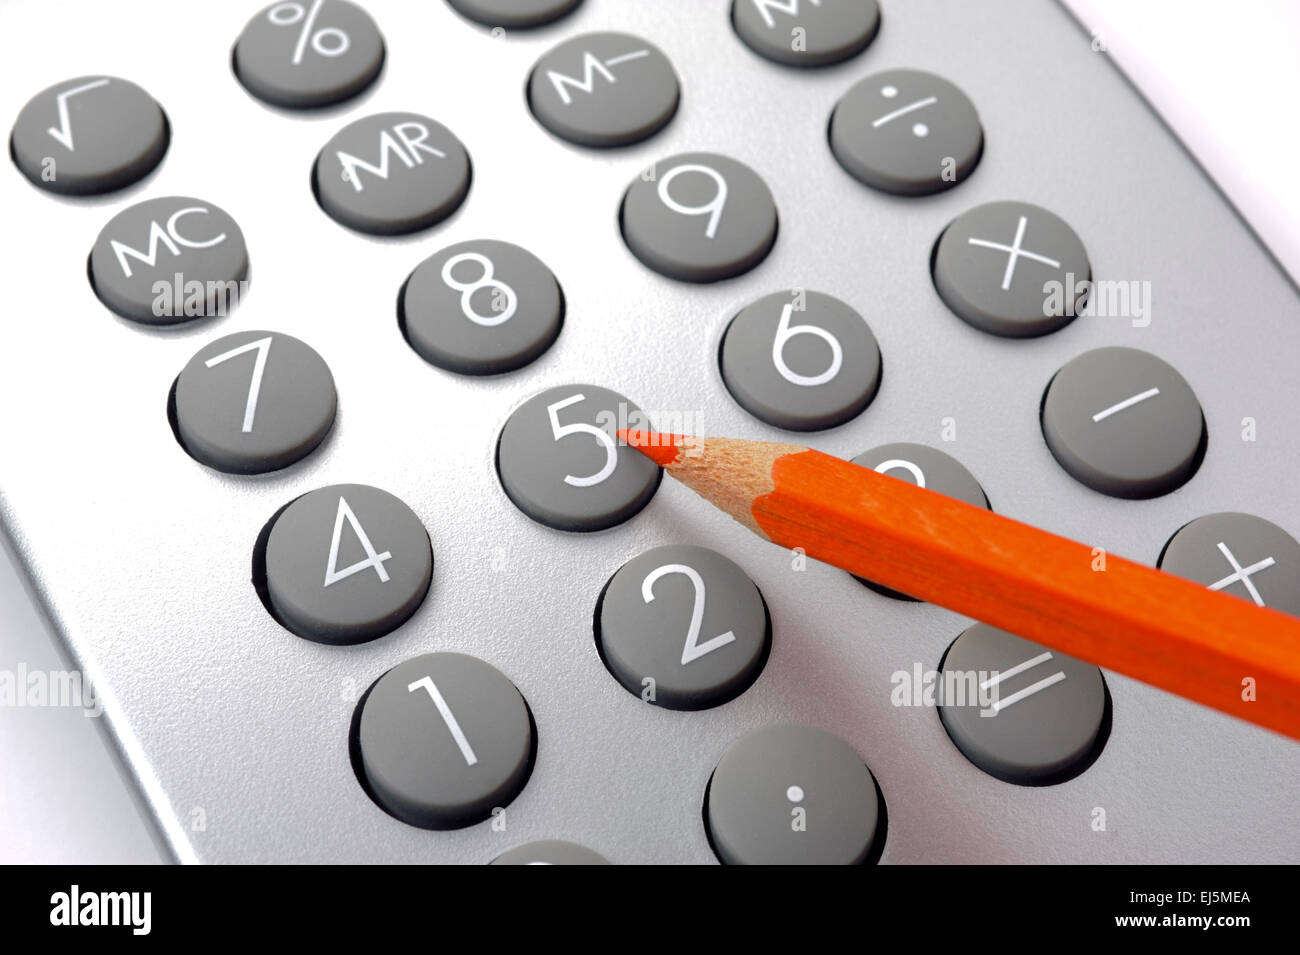 Financial business calculation with calculator and red pencil - Stock Image